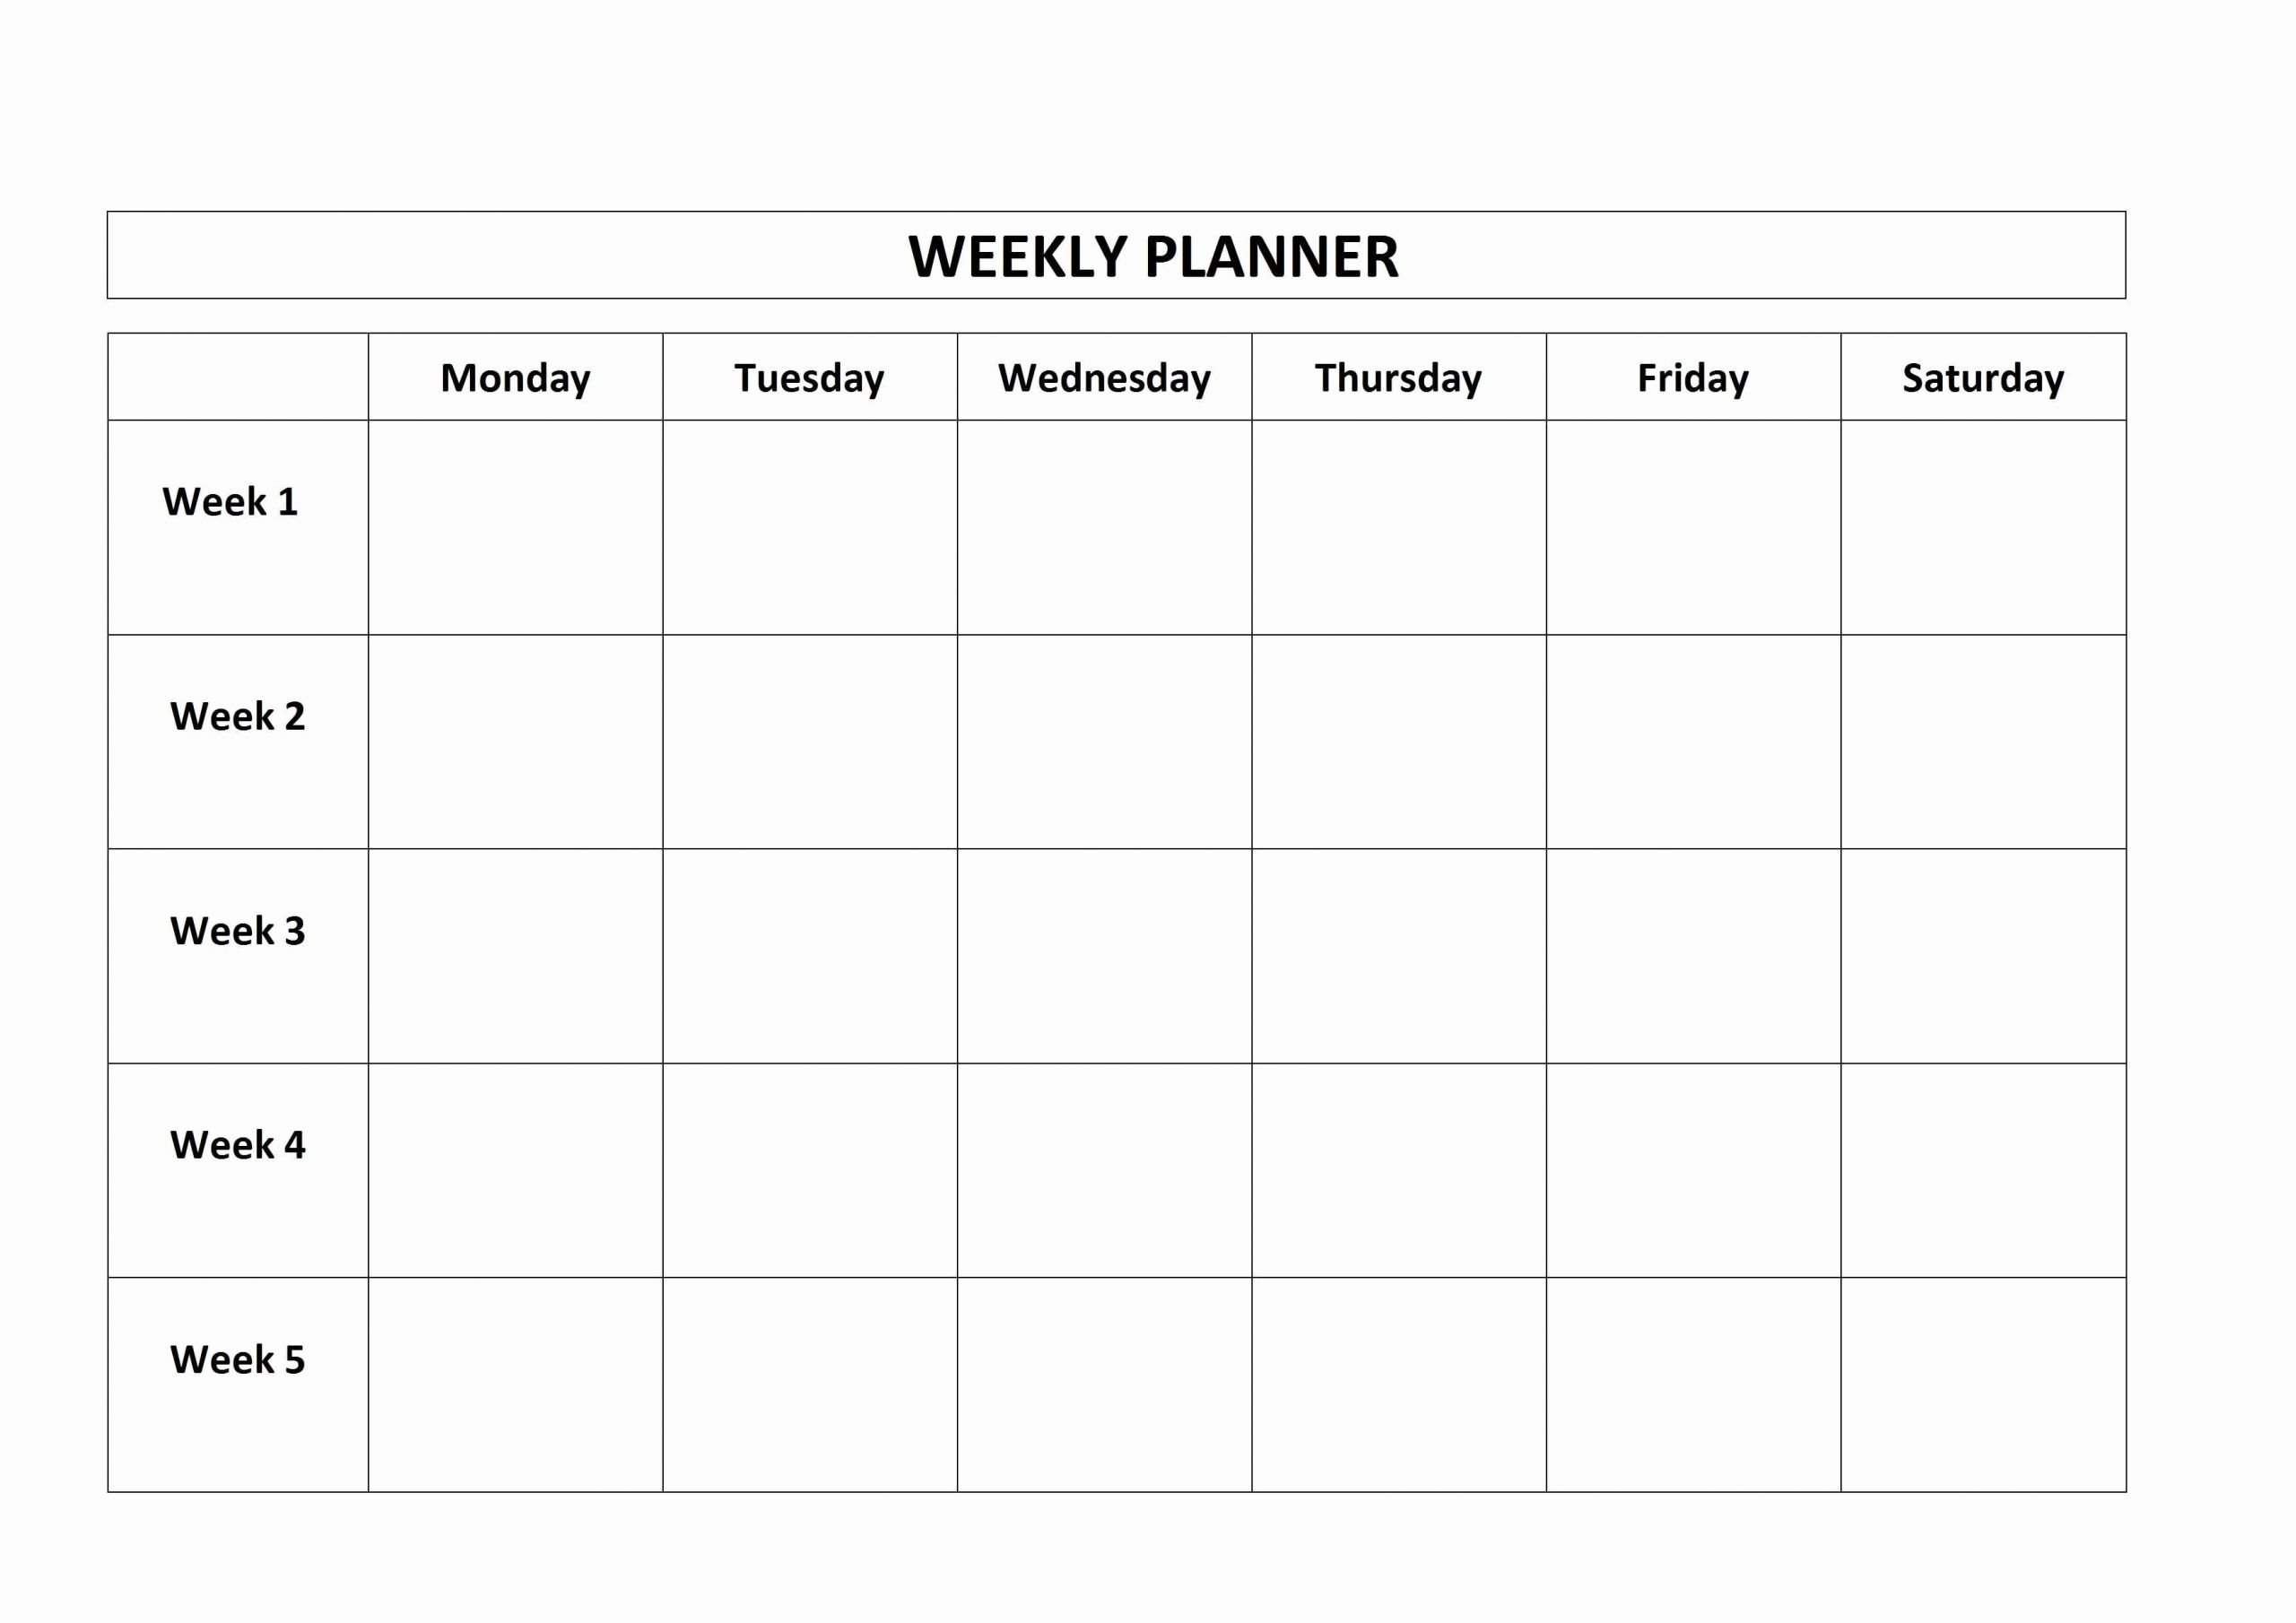 One Day Schedule Template Unique Simple Weekly Planner form